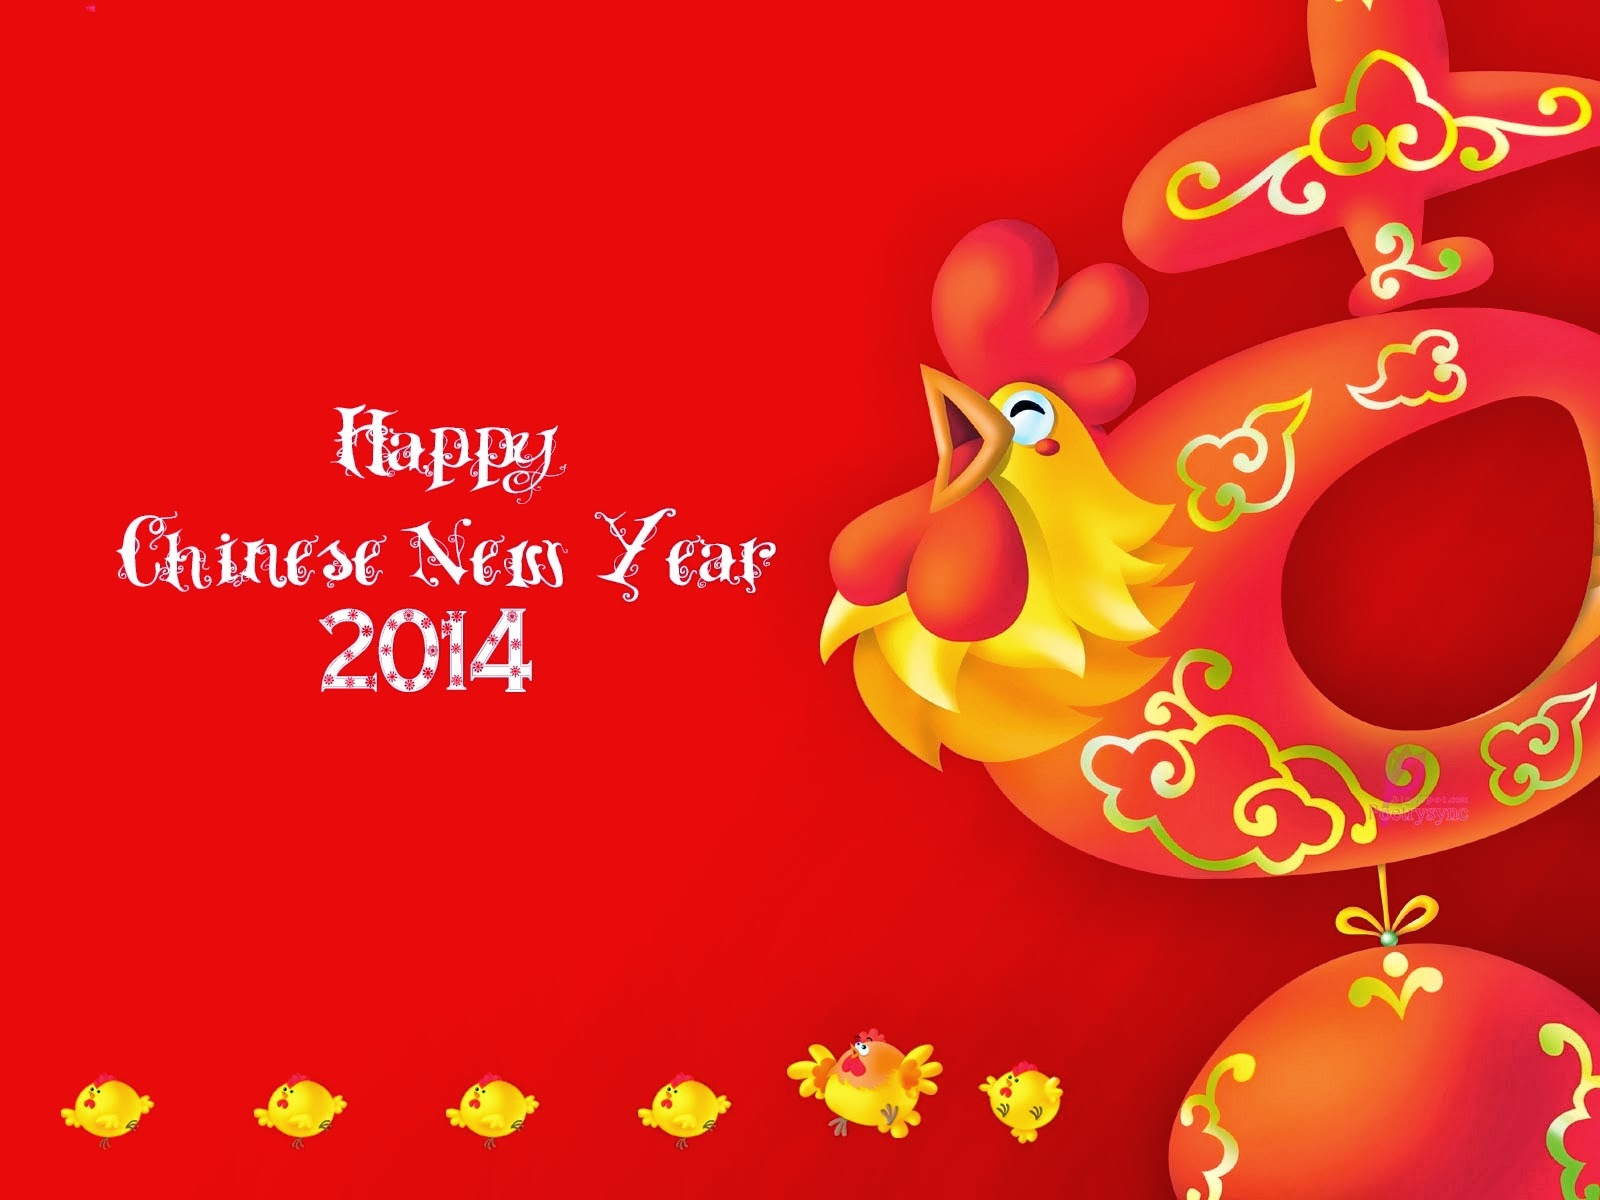 Happy chinese new year facebook status messages with chinese a new year is perhaps the best time 2 say its so nice 2 know u heres wishing our friendship continues 2 grow in the days 2 come happy chinese m4hsunfo